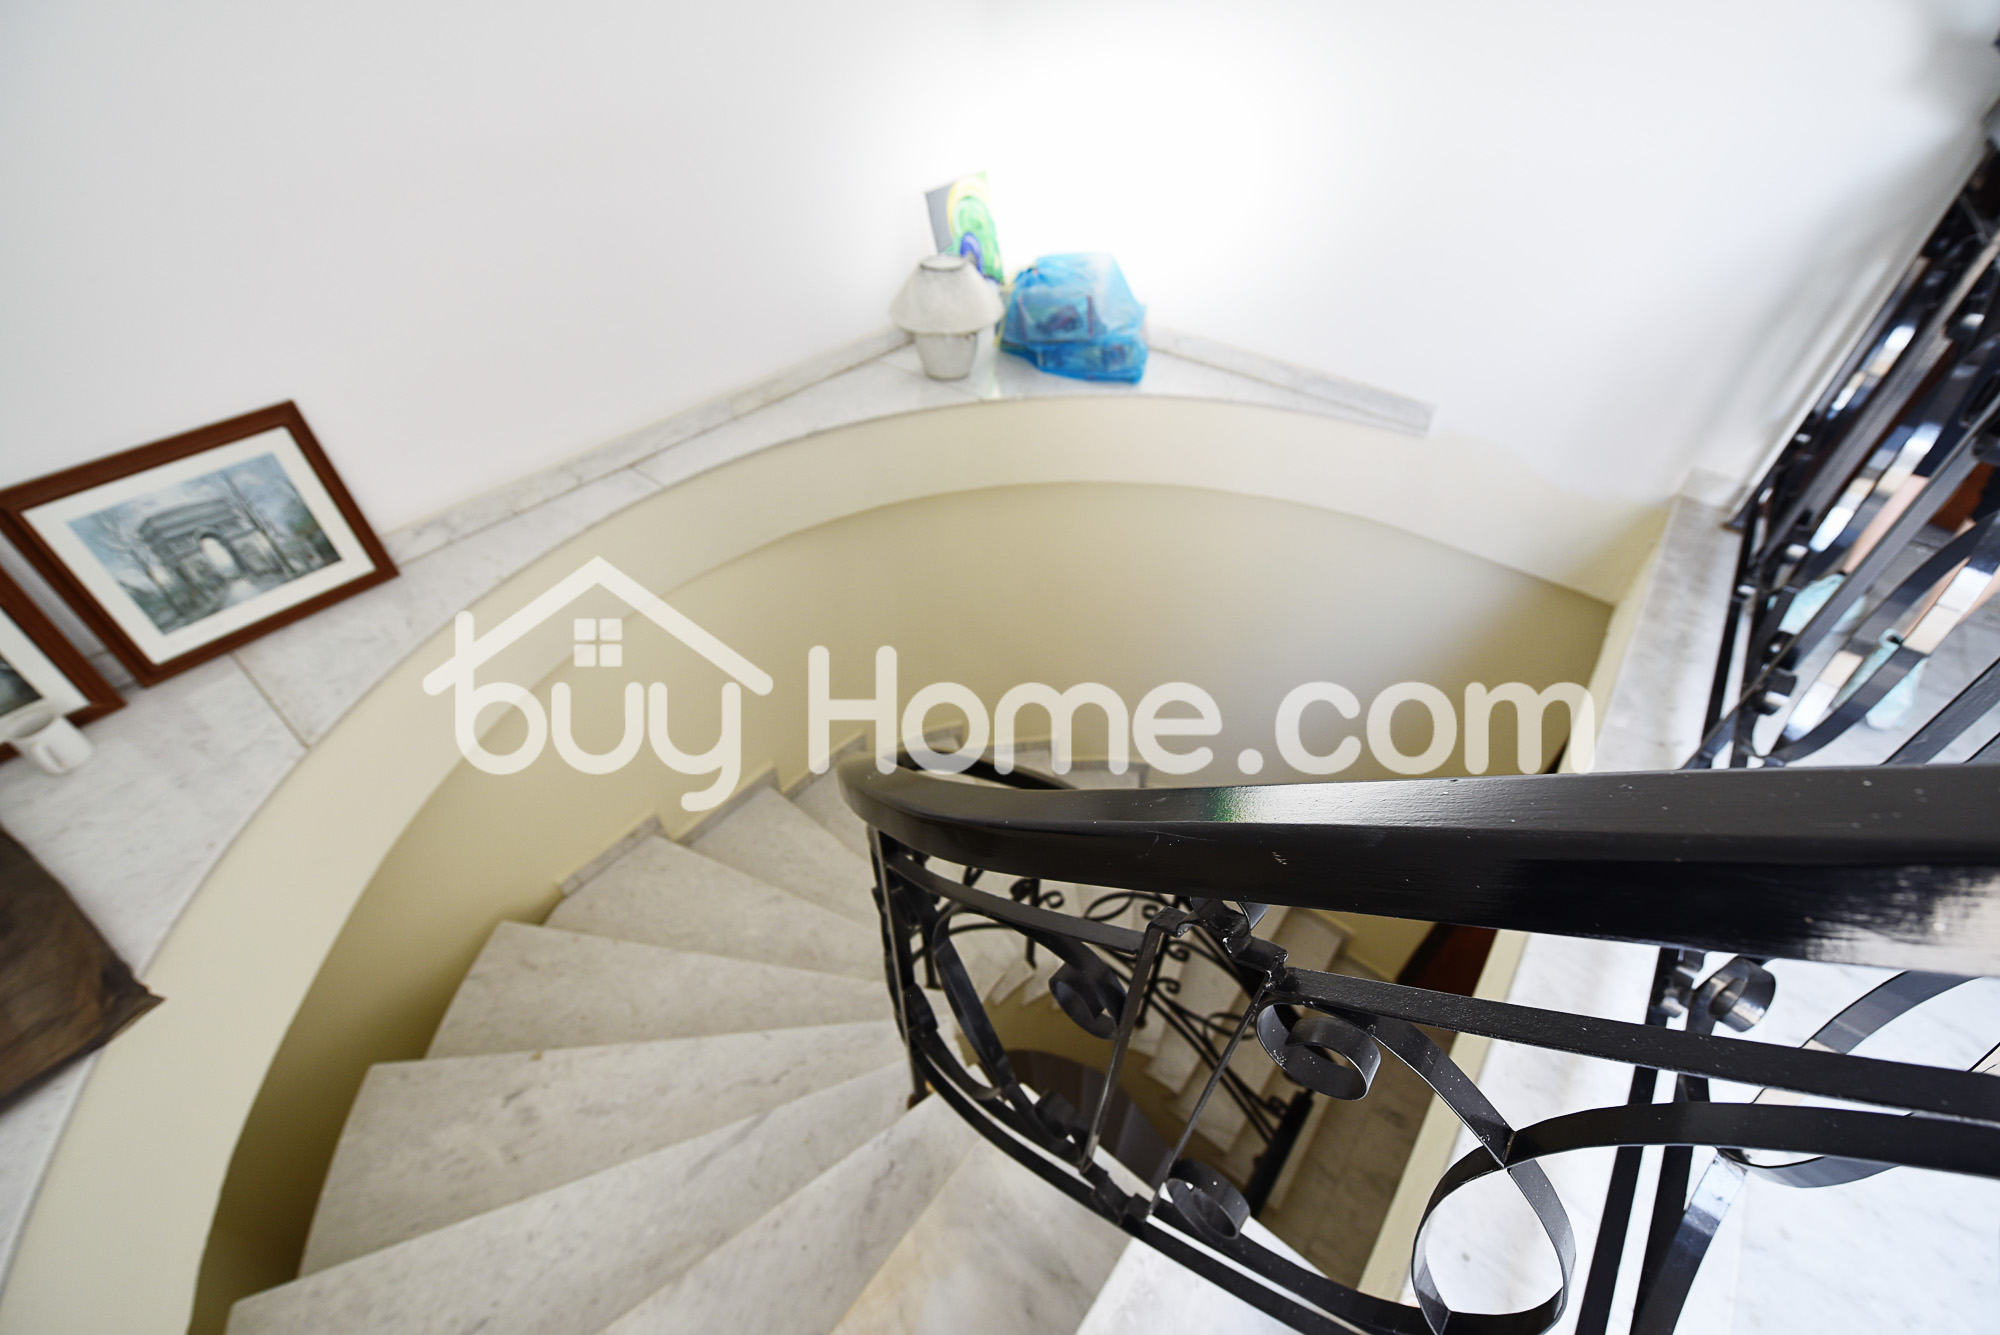 4 Bedroom House Downtown | BuyHome